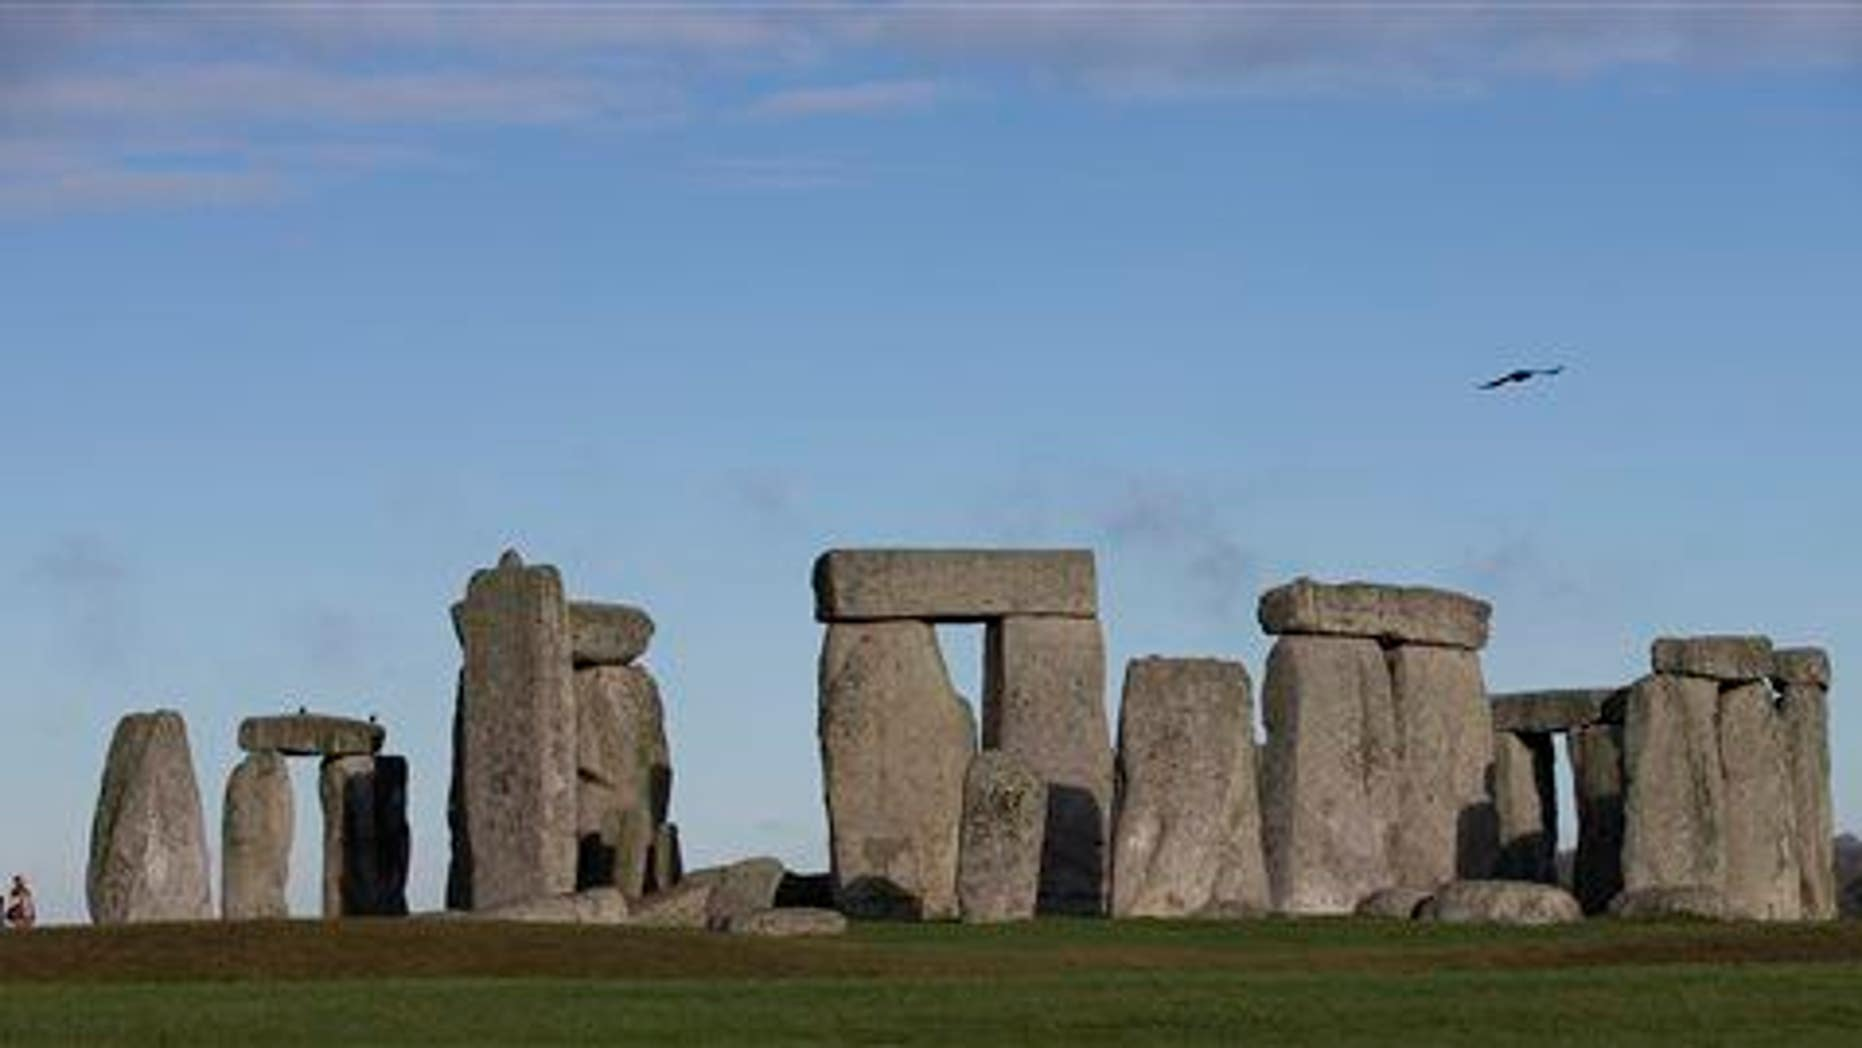 Visitors take photographs of the world heritage site of Stonehenge, Tuesday, Dec. 17, 2013.